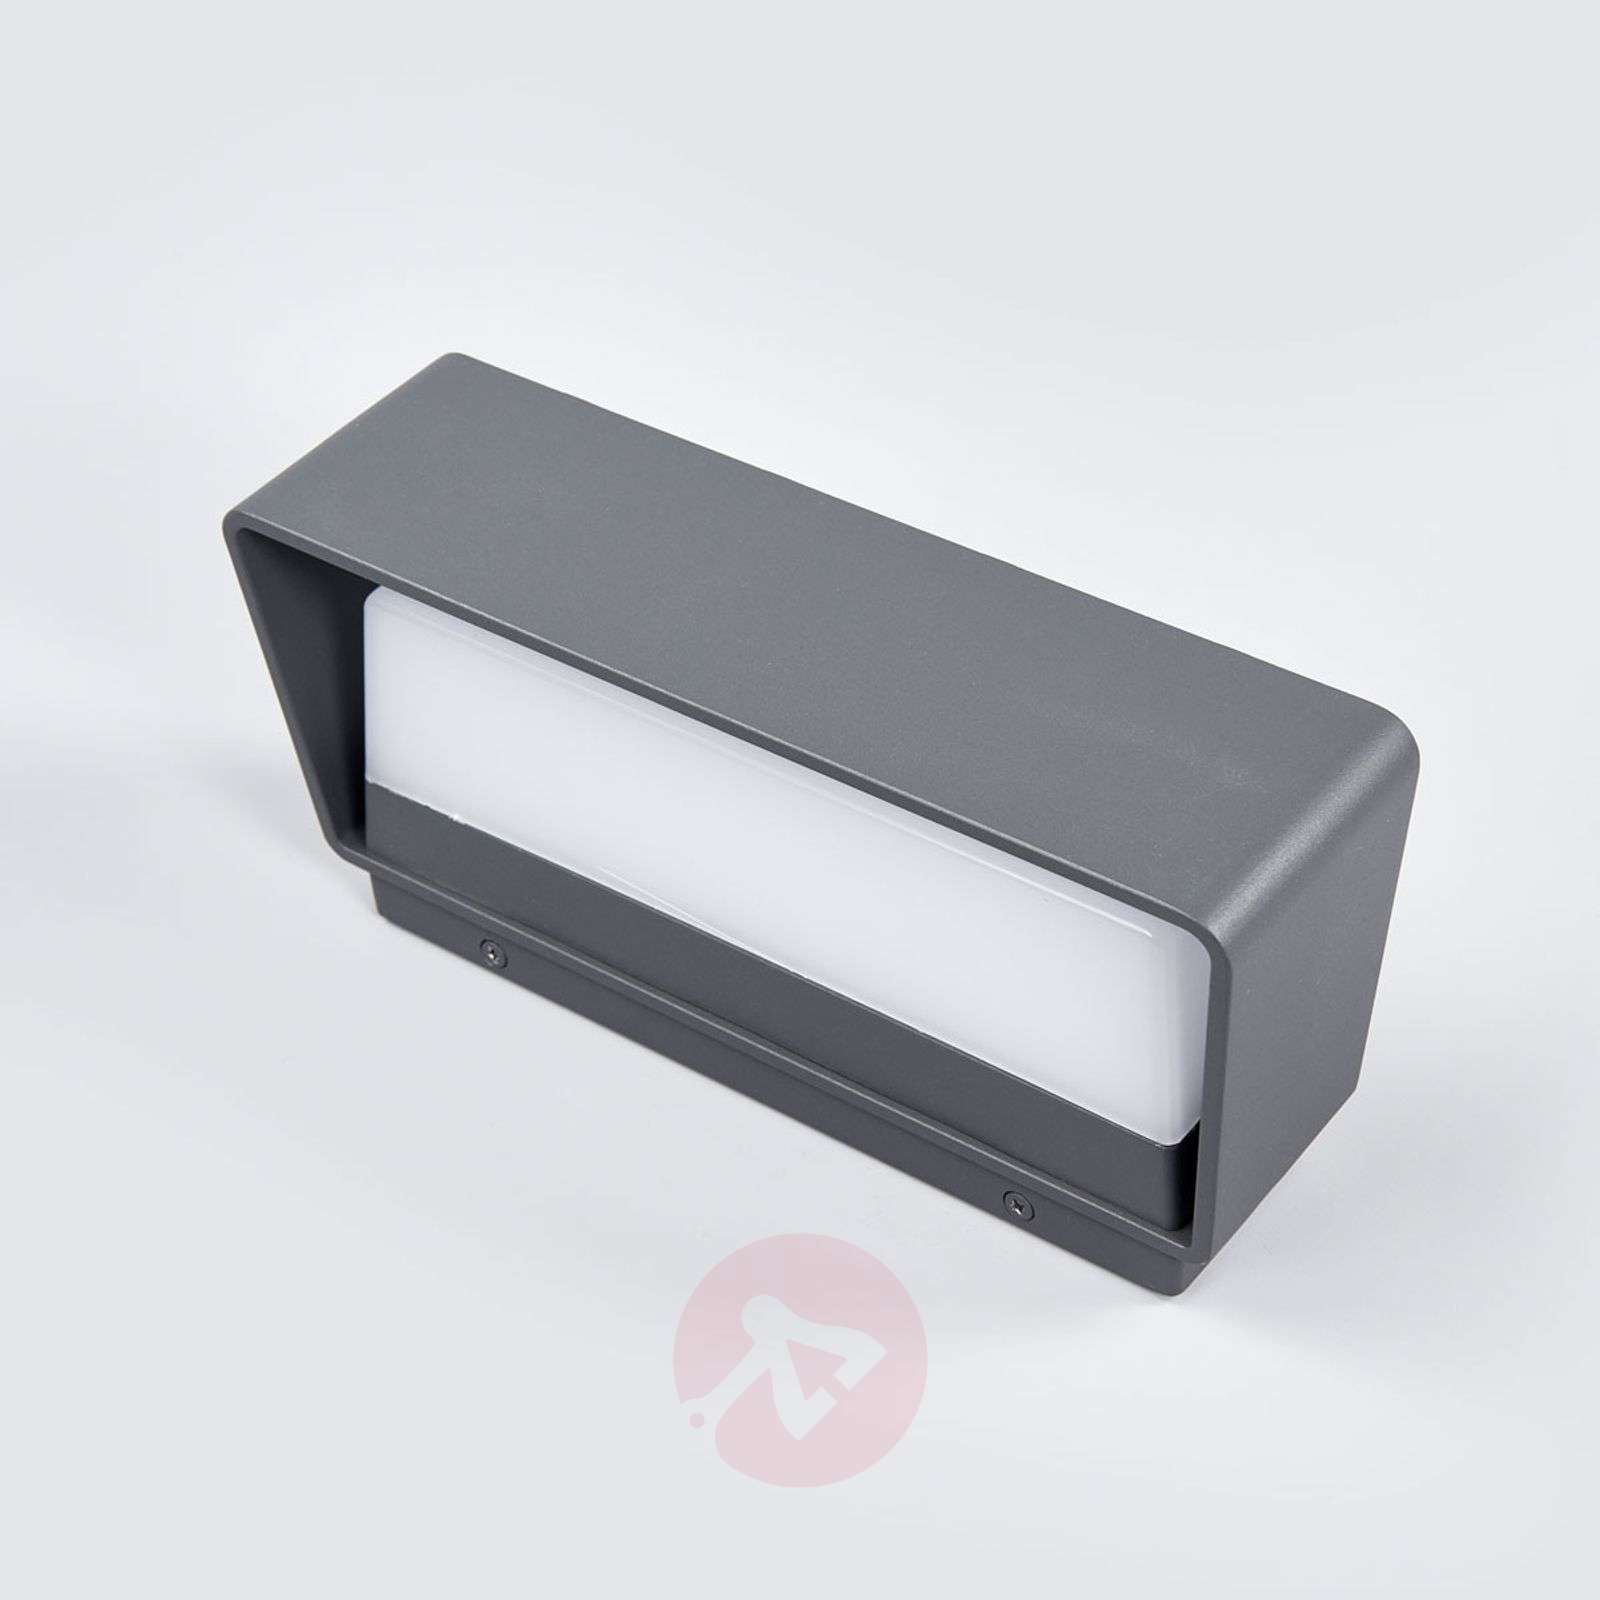 Logan simple LED wall lamp for outdoors, IP65-9617035-02